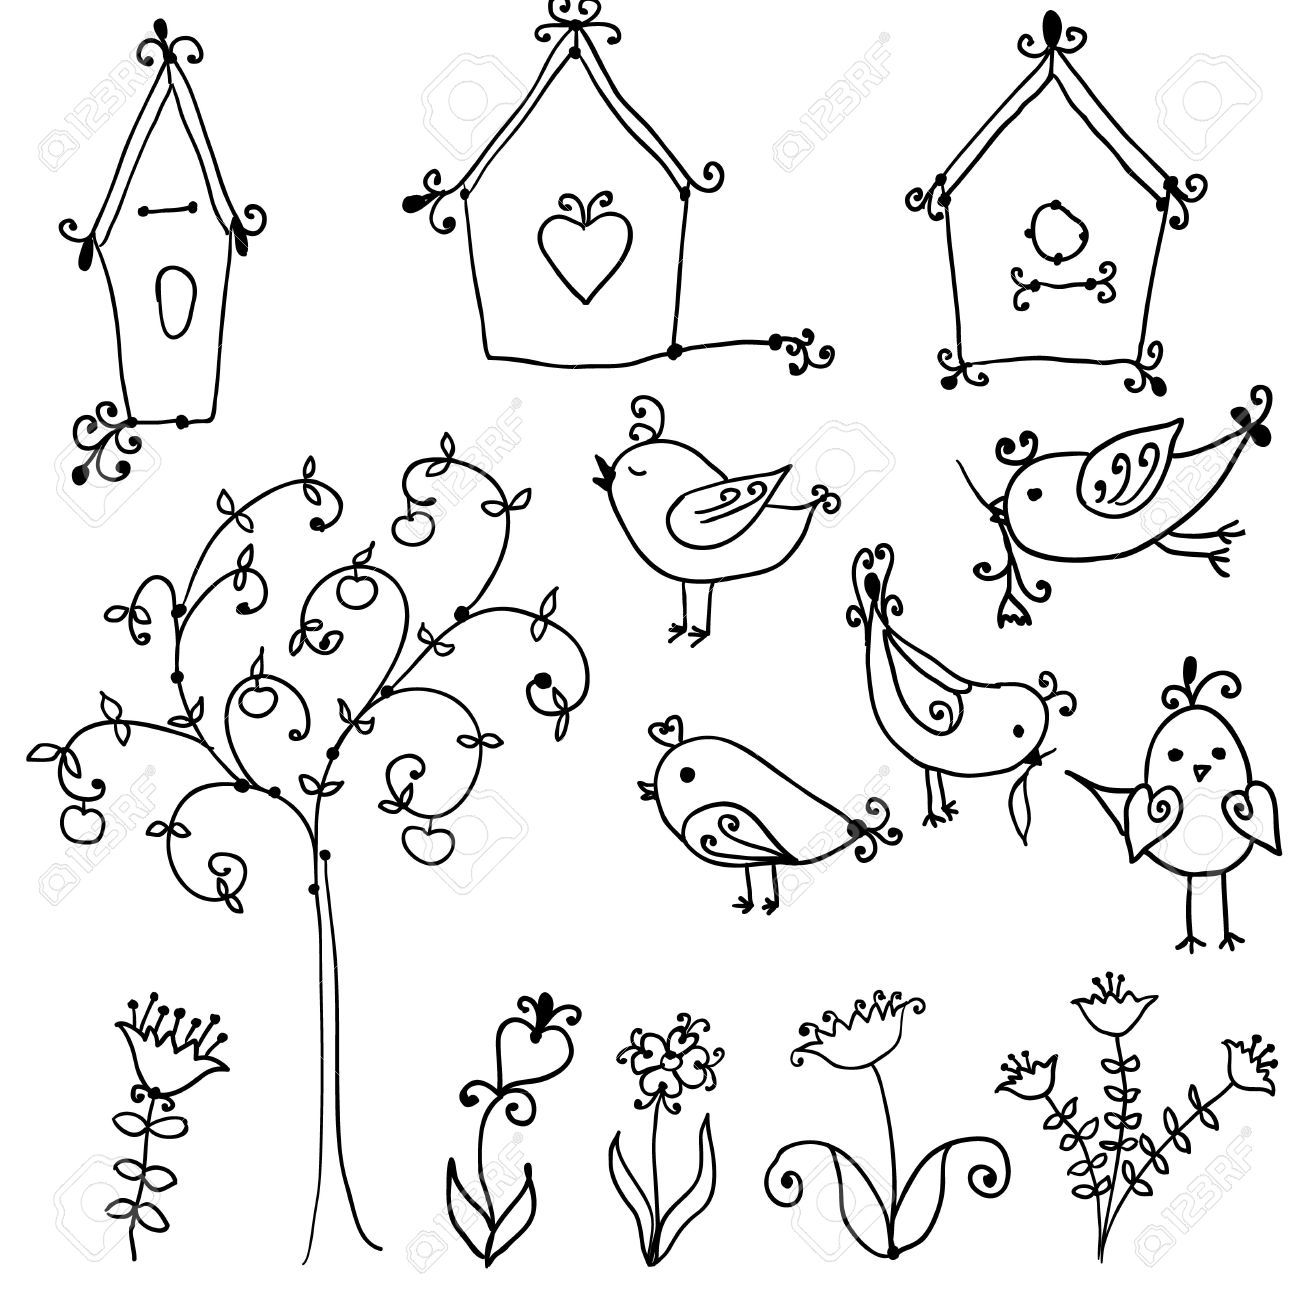 1299x1300 Set Of Cute Cartoon Birds, Tree And And Bird Nesting Boxes Royalty